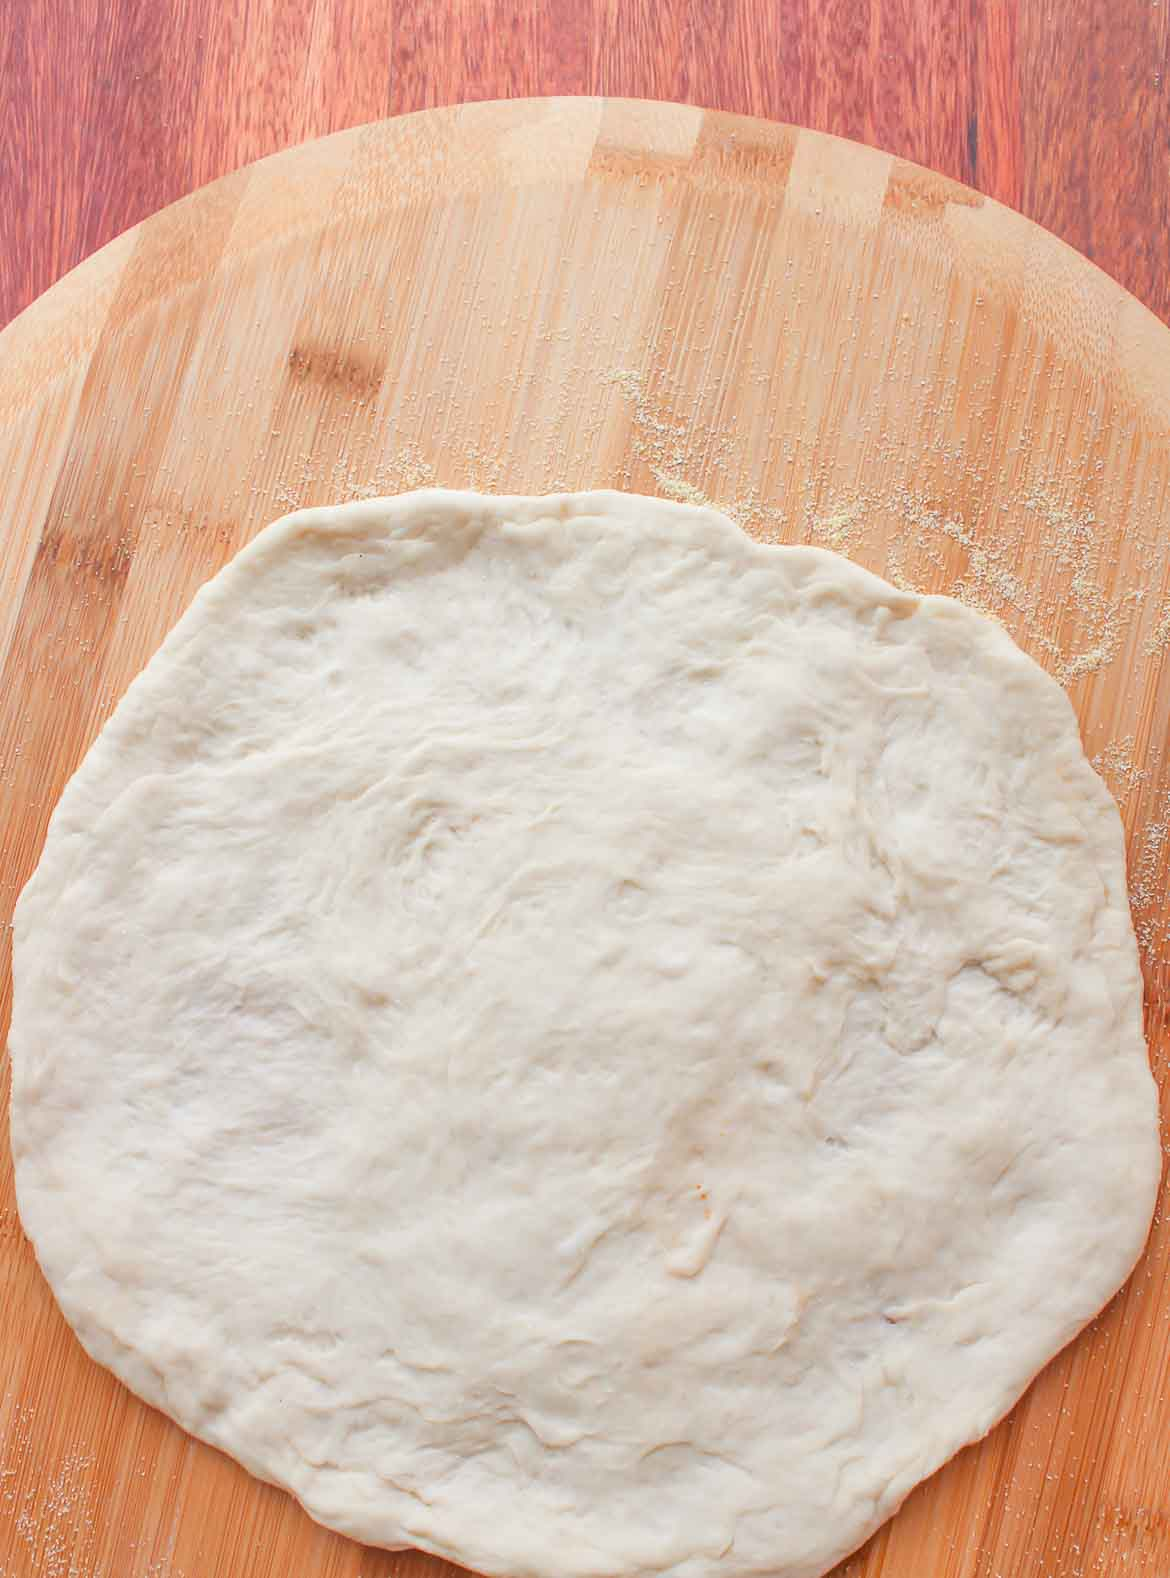 rustic pizza dough ready for toppings